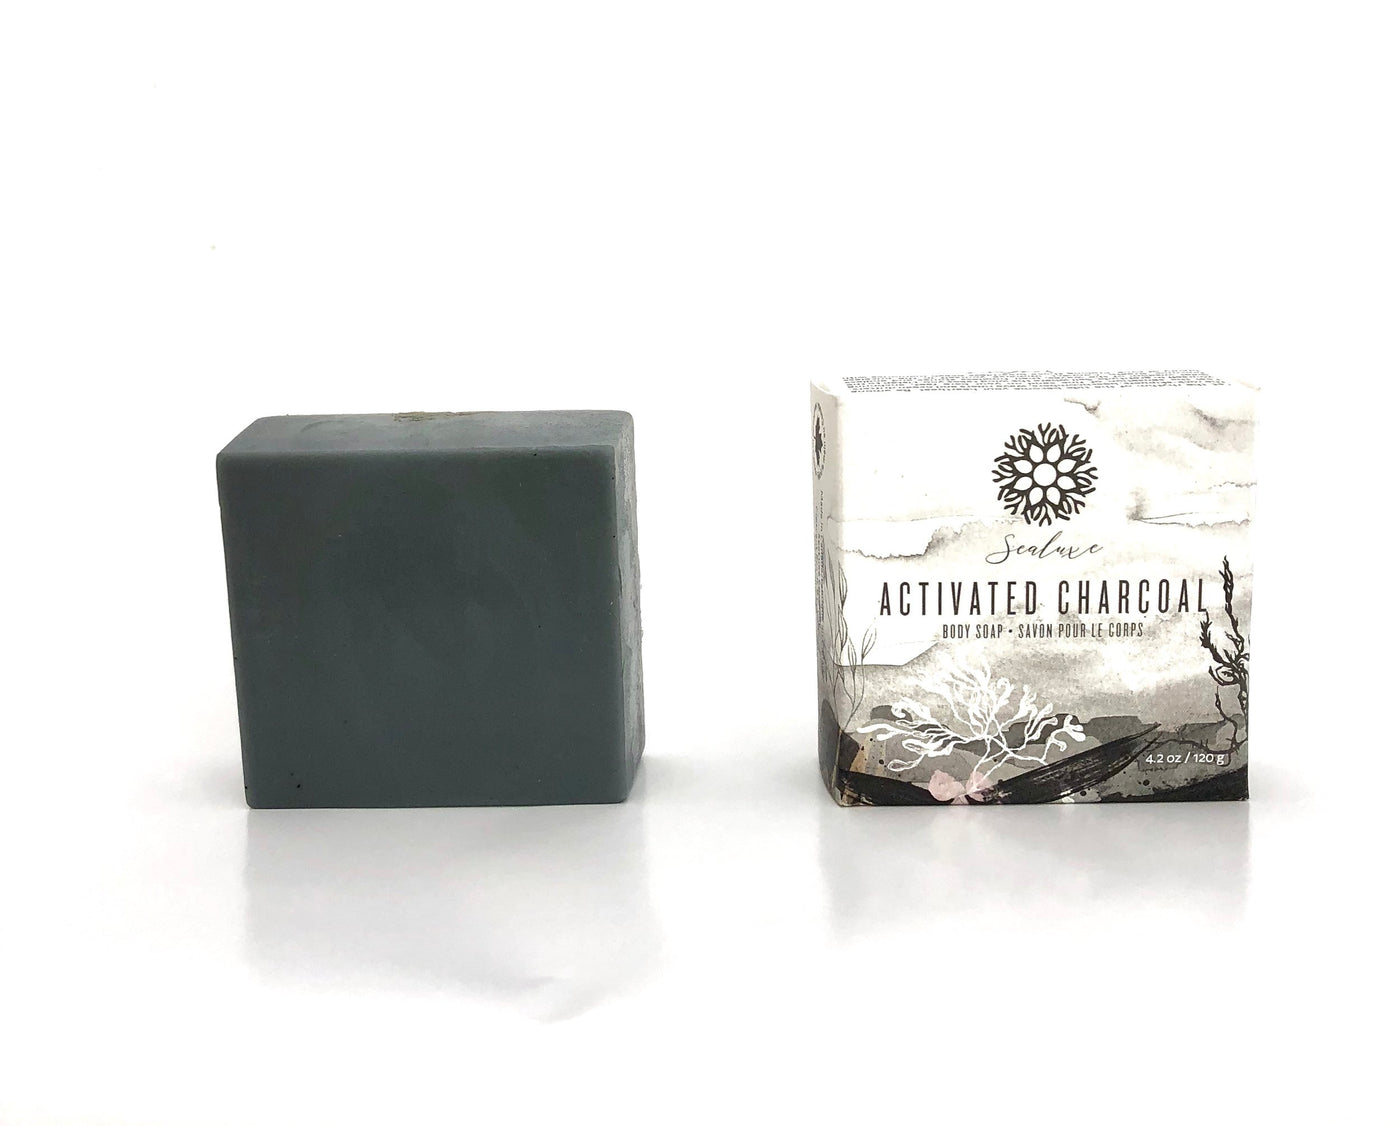 Body Soap - Activated Charcoal